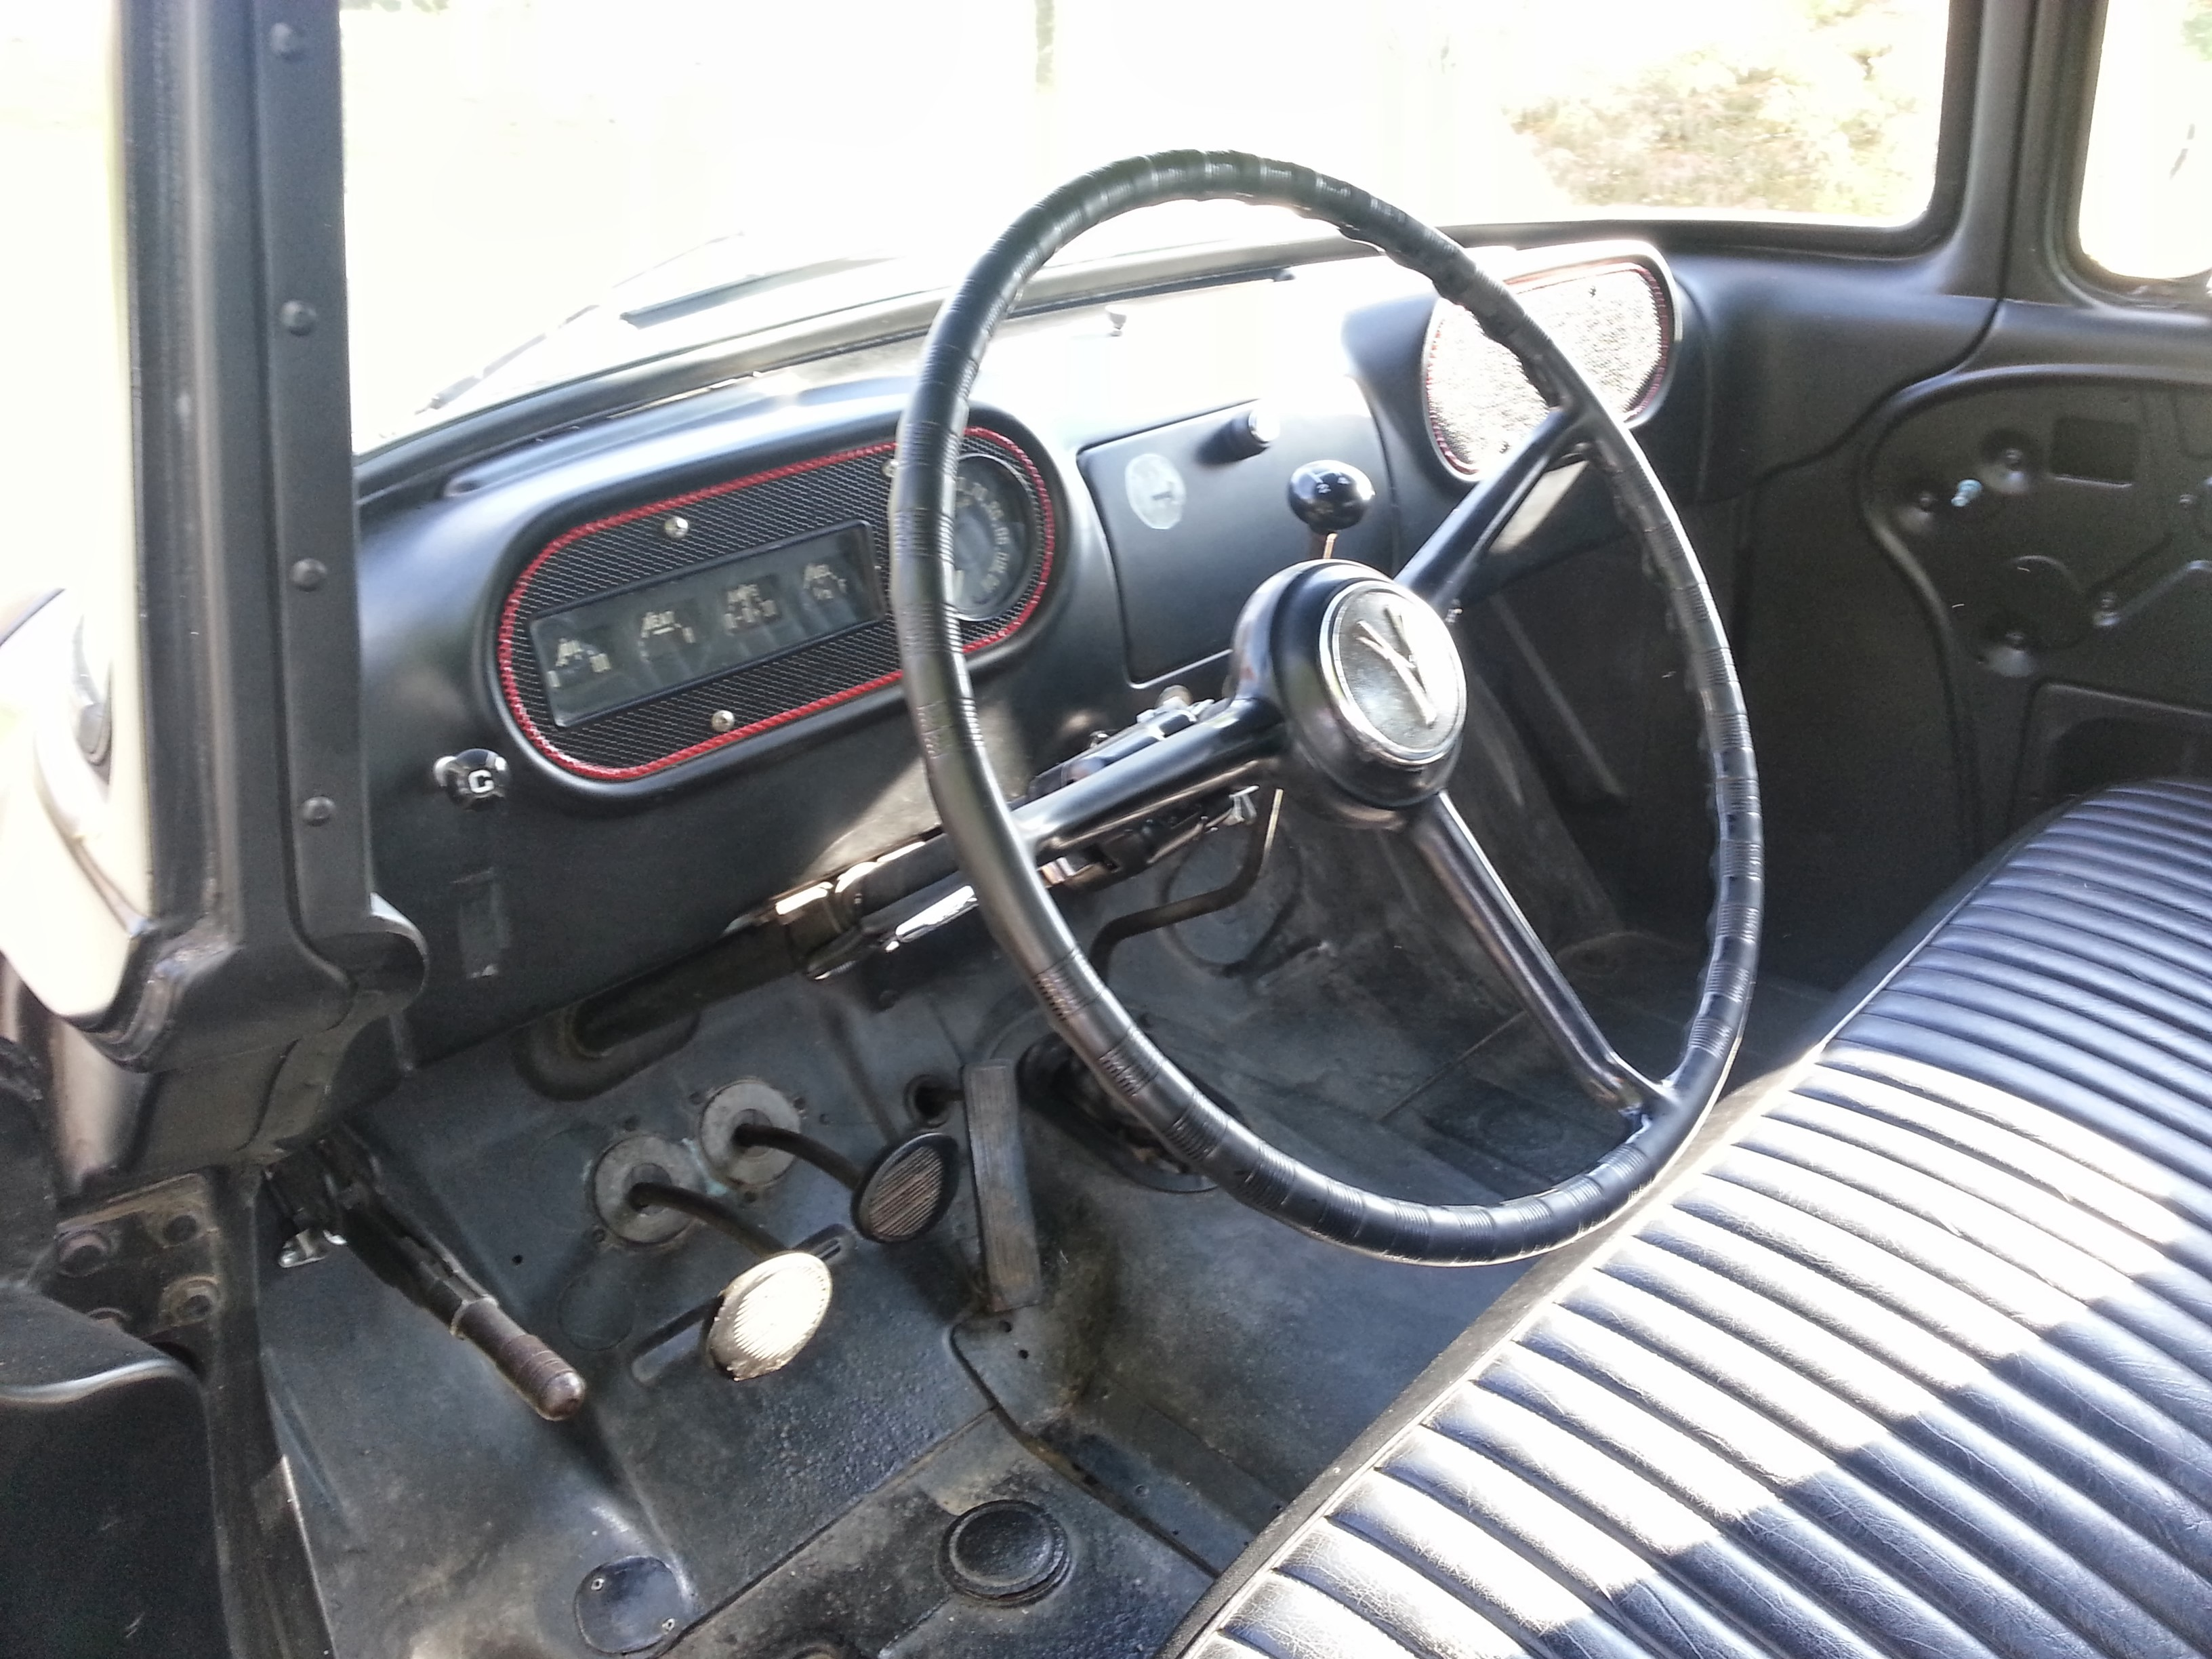 1957 Dodge D100 Pickup - SOLD! - Auto Repair and State ...